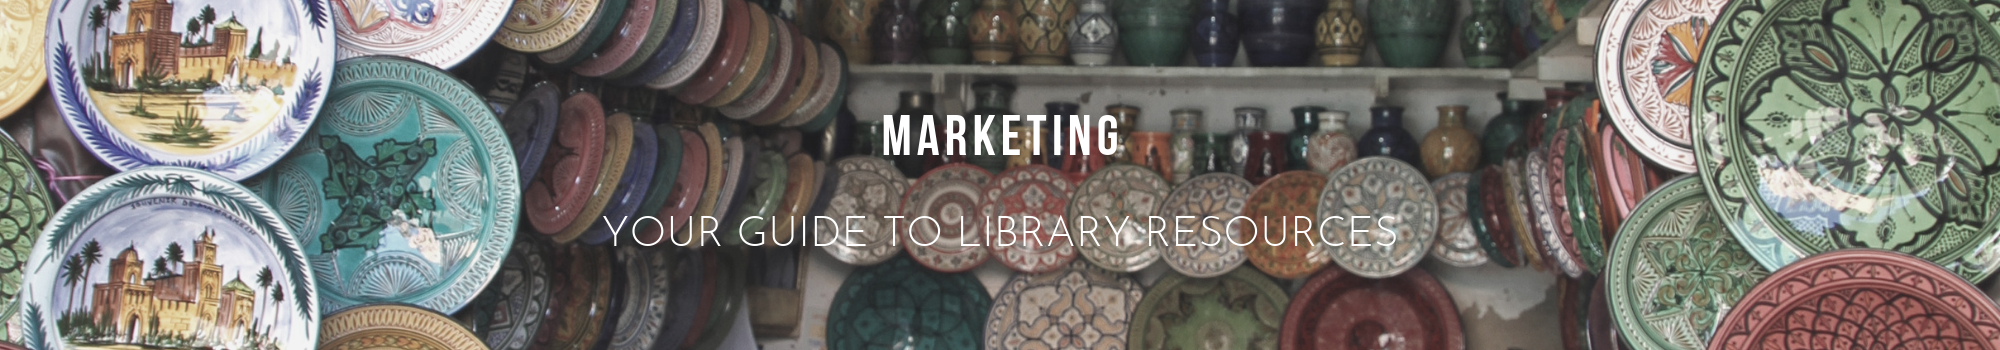 Marketing - Your library guide to resources